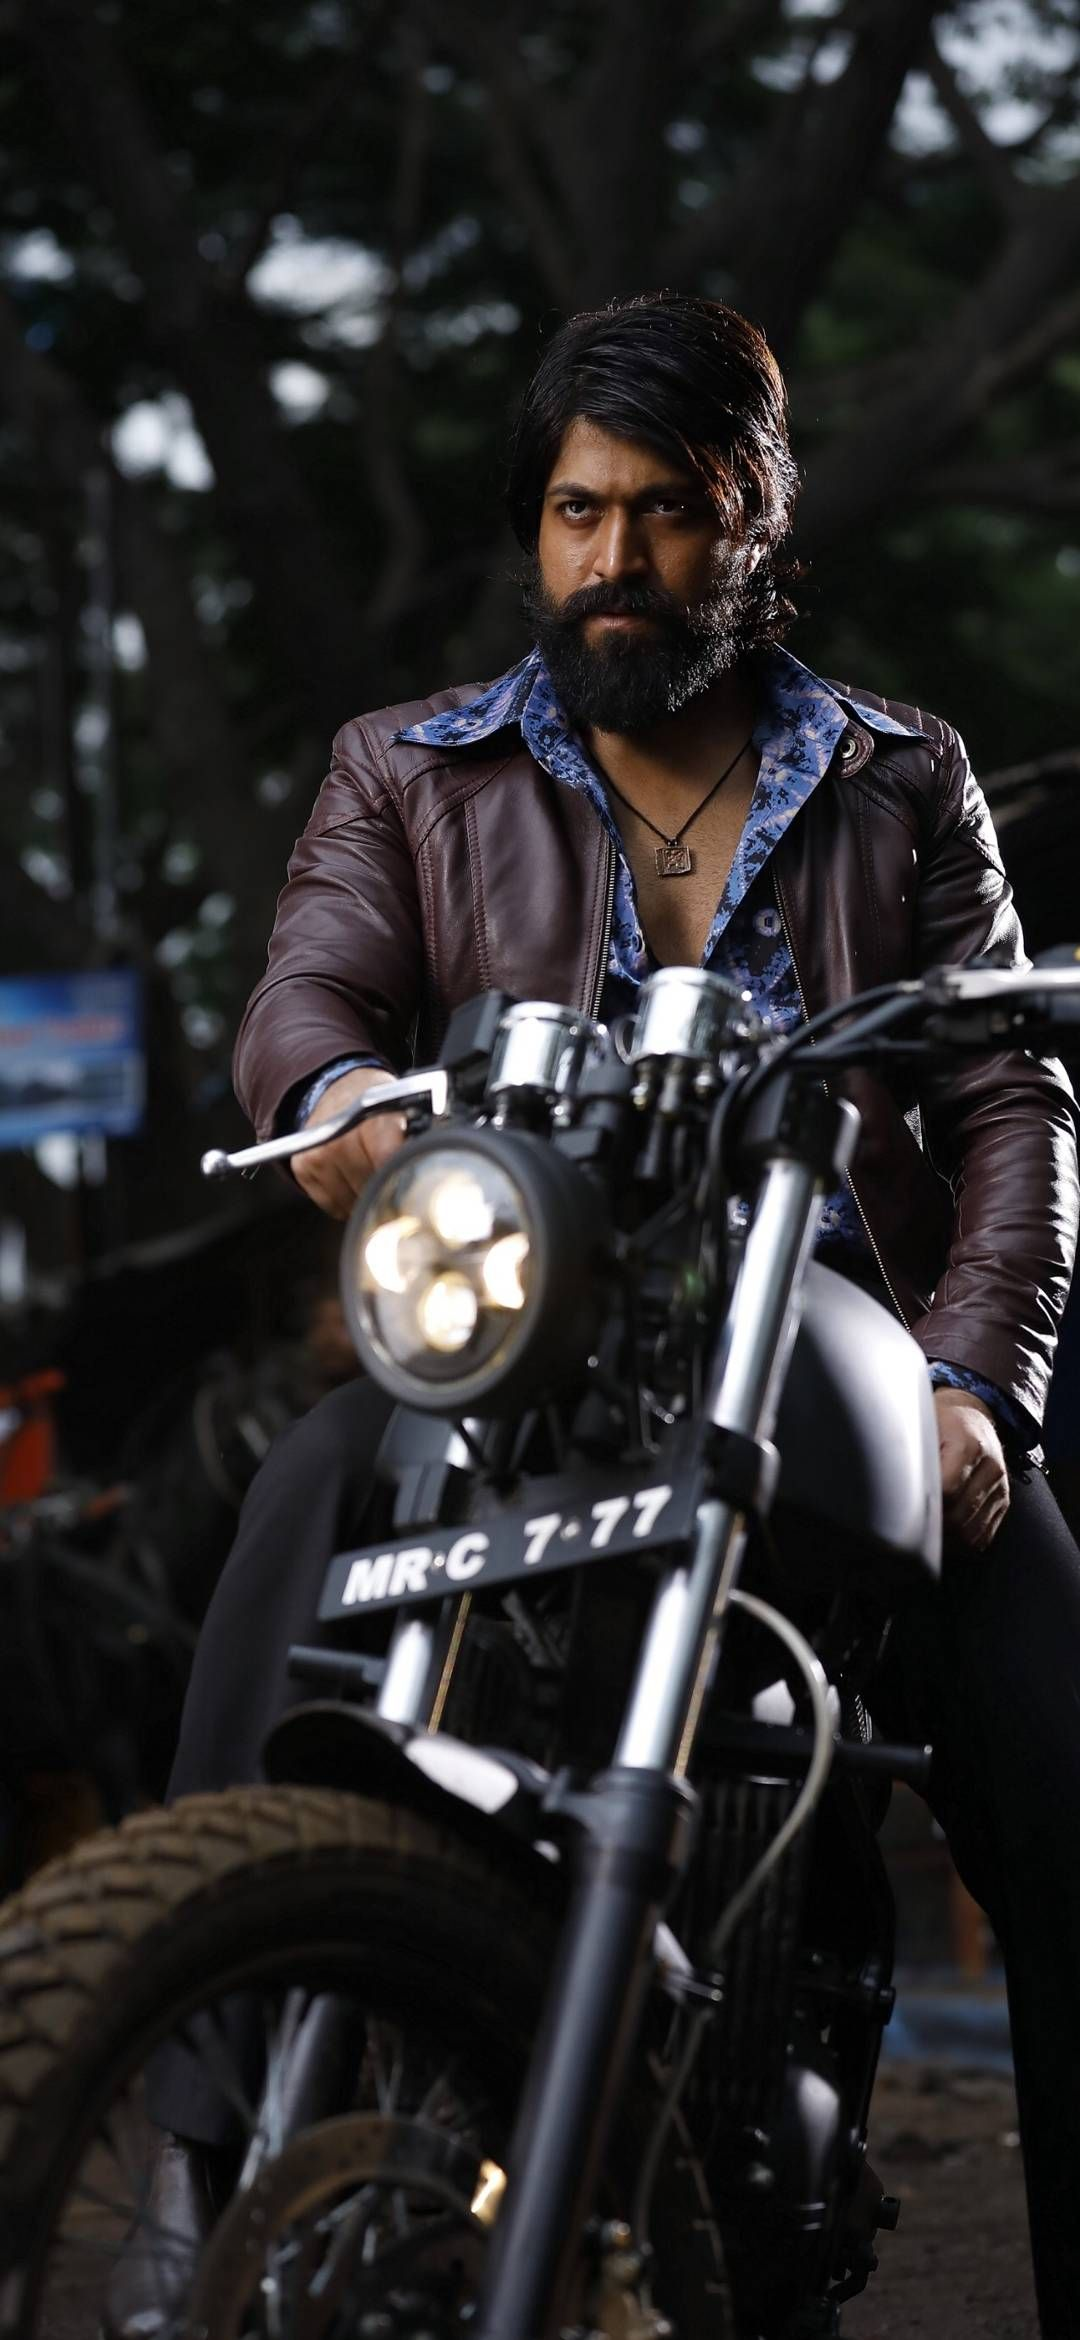 kgf movie mother background music mp3 download